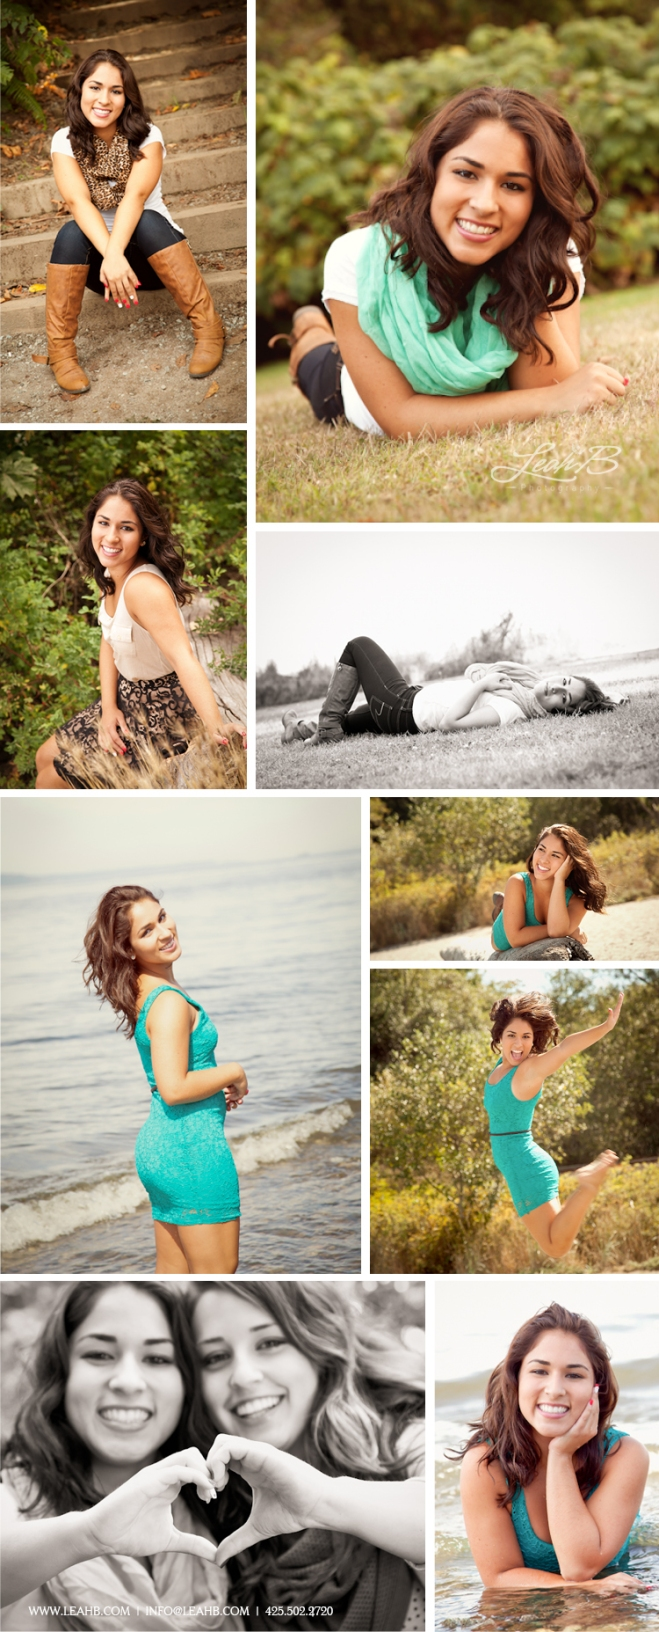 {Jaclyn 2014} - Carkeek Park Senior Session